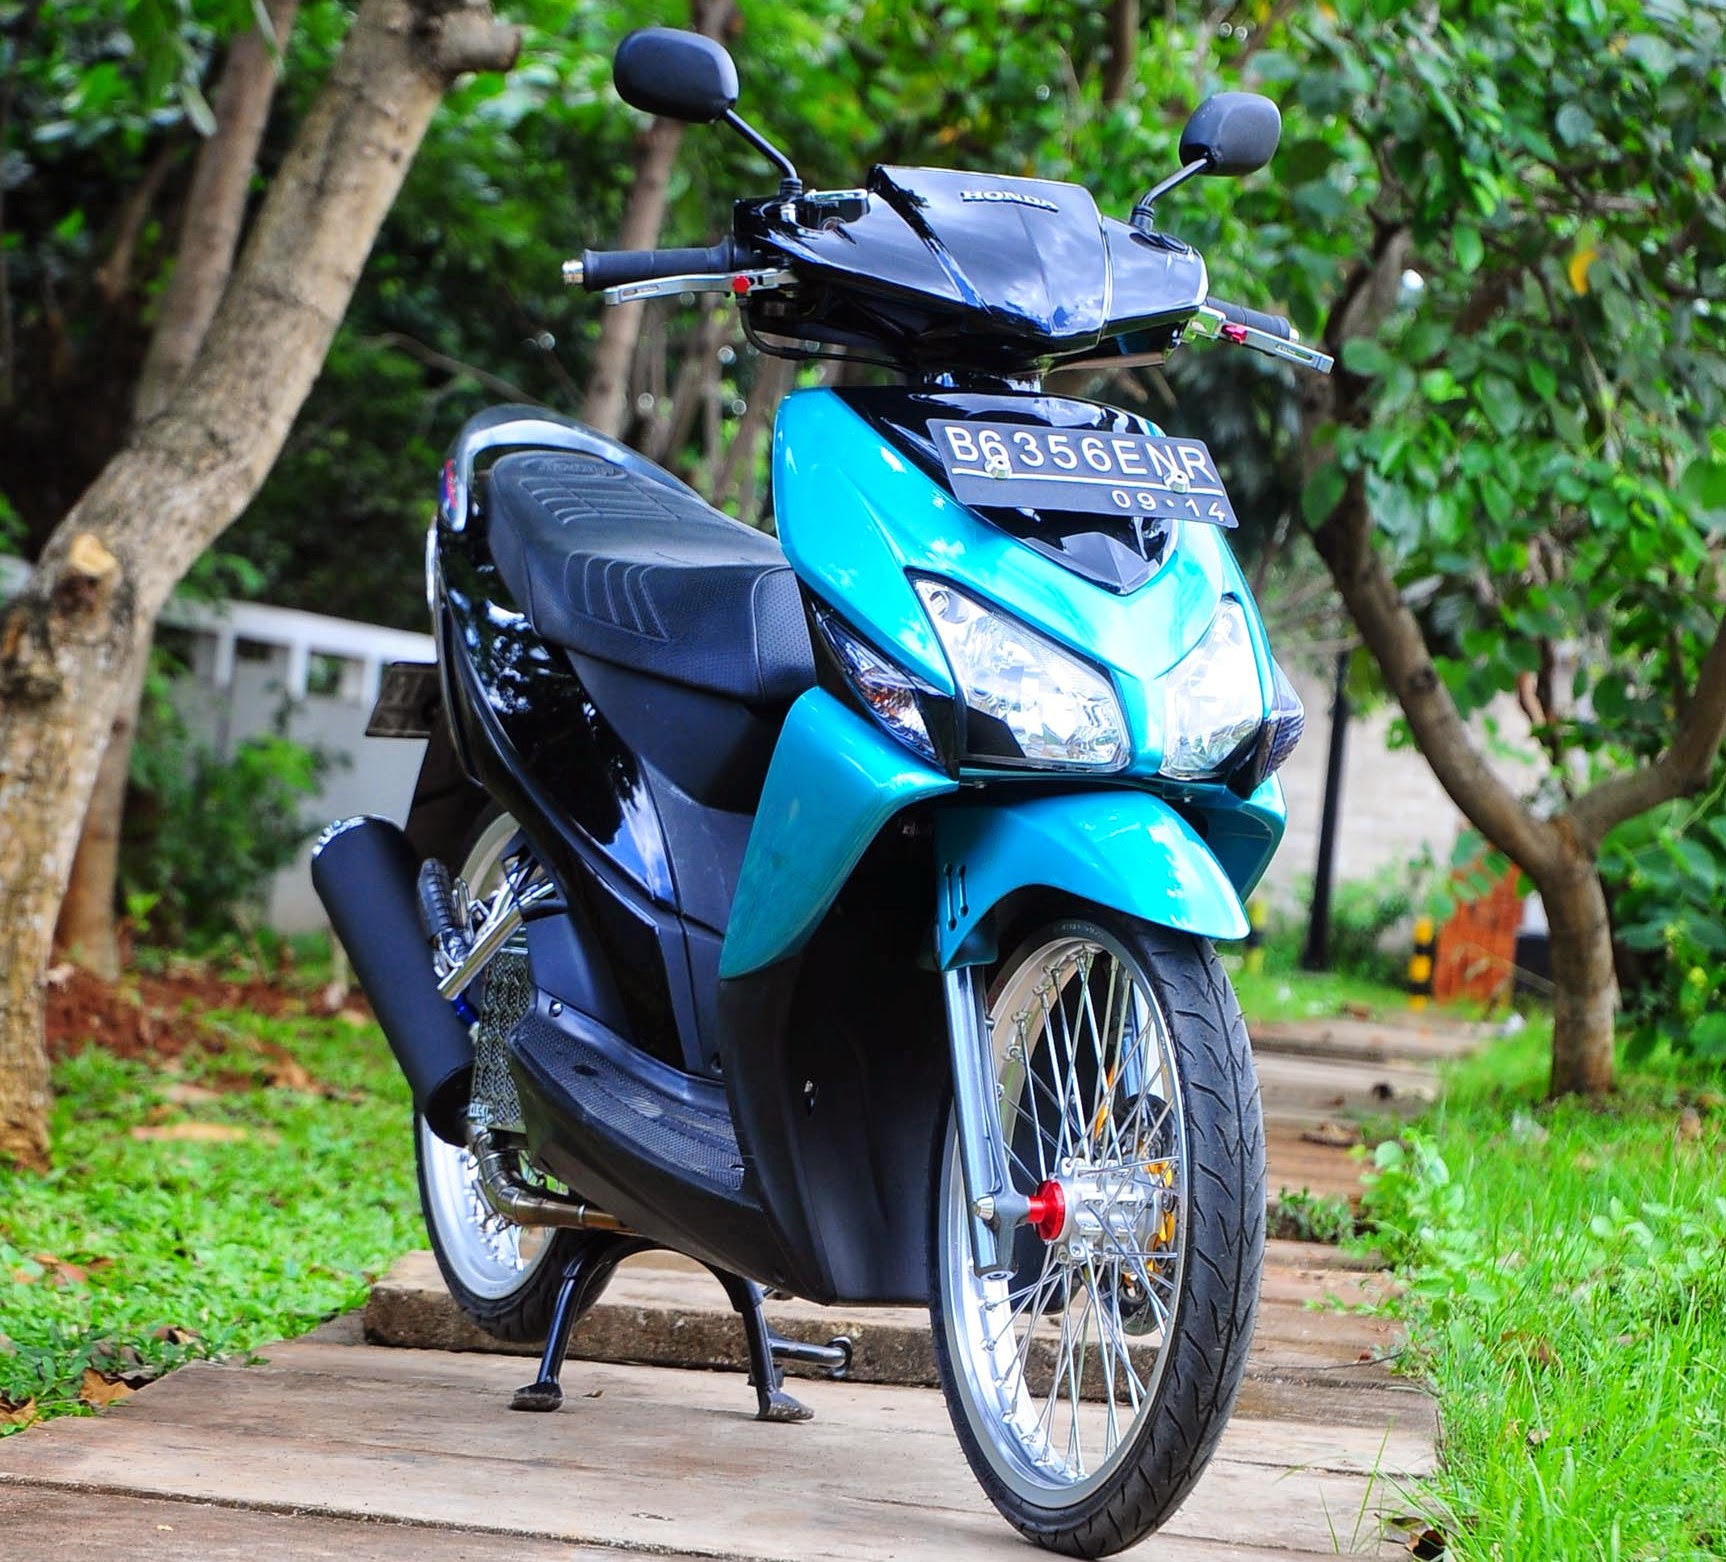 Vario Techno Modifikasi Drag